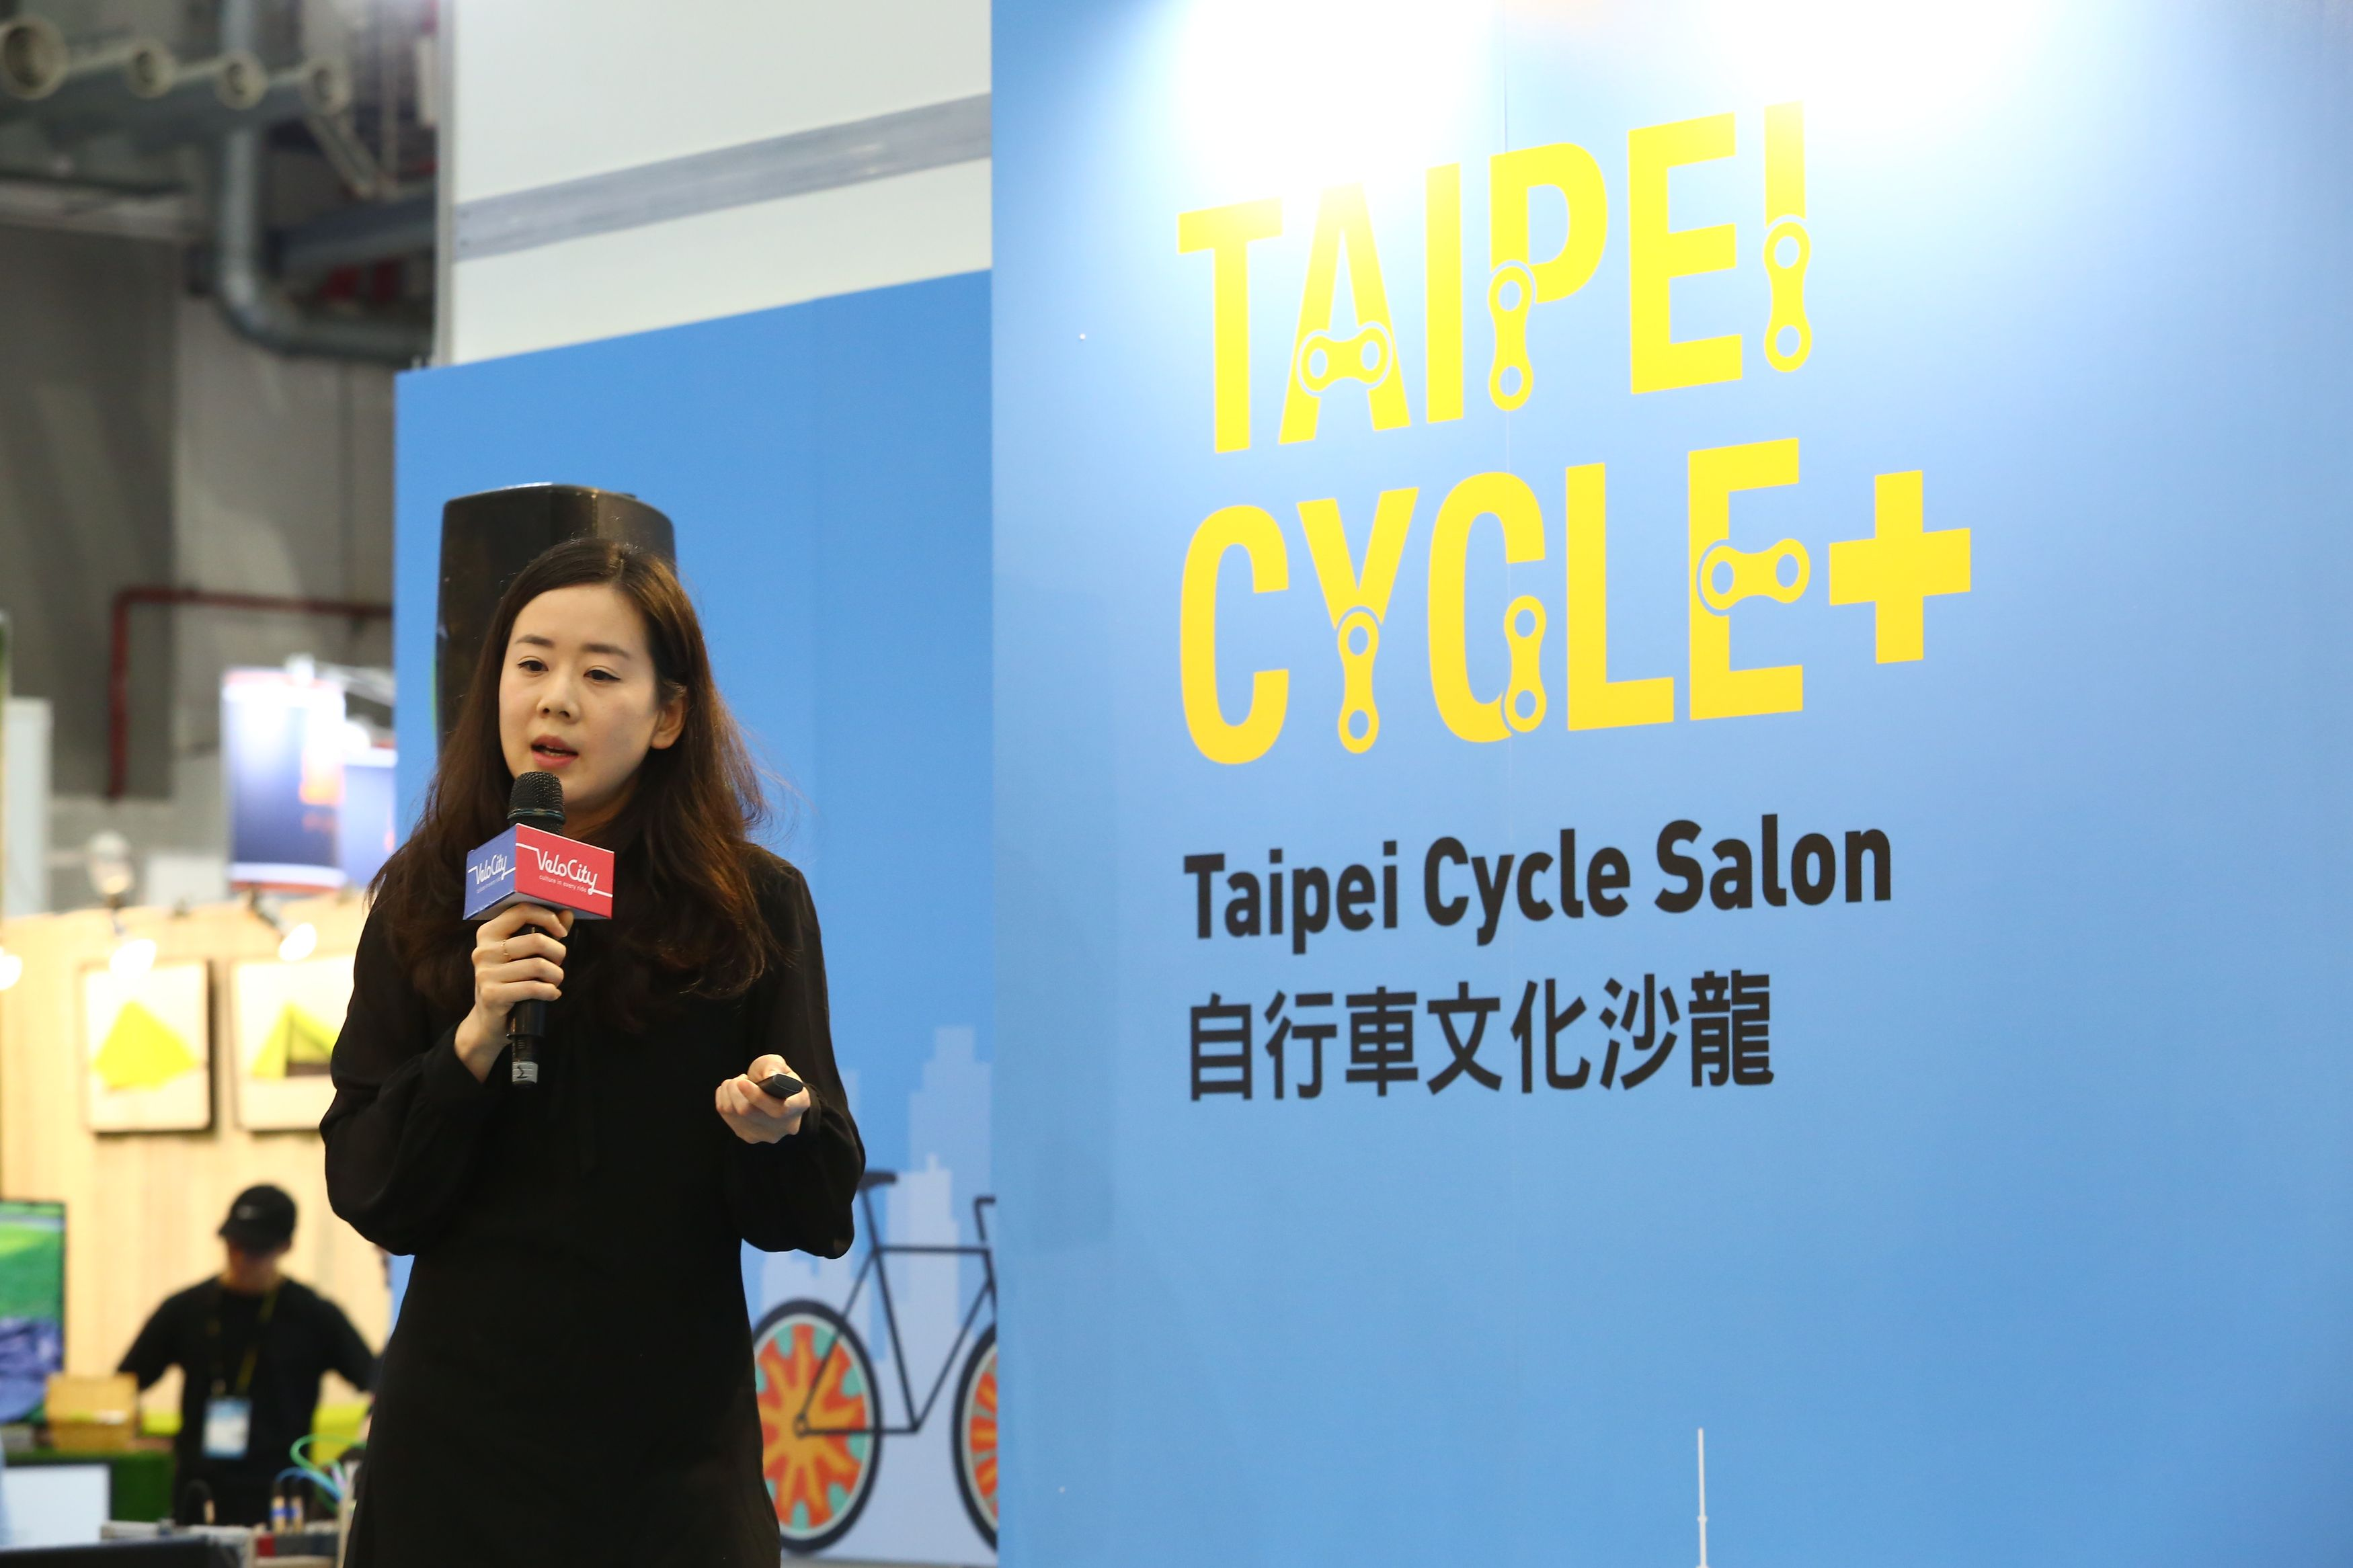 https://storage.googleapis.com/www.taiwantradeshow.com.tw/model/photo/CC/2019/PH00033619-name.jpg